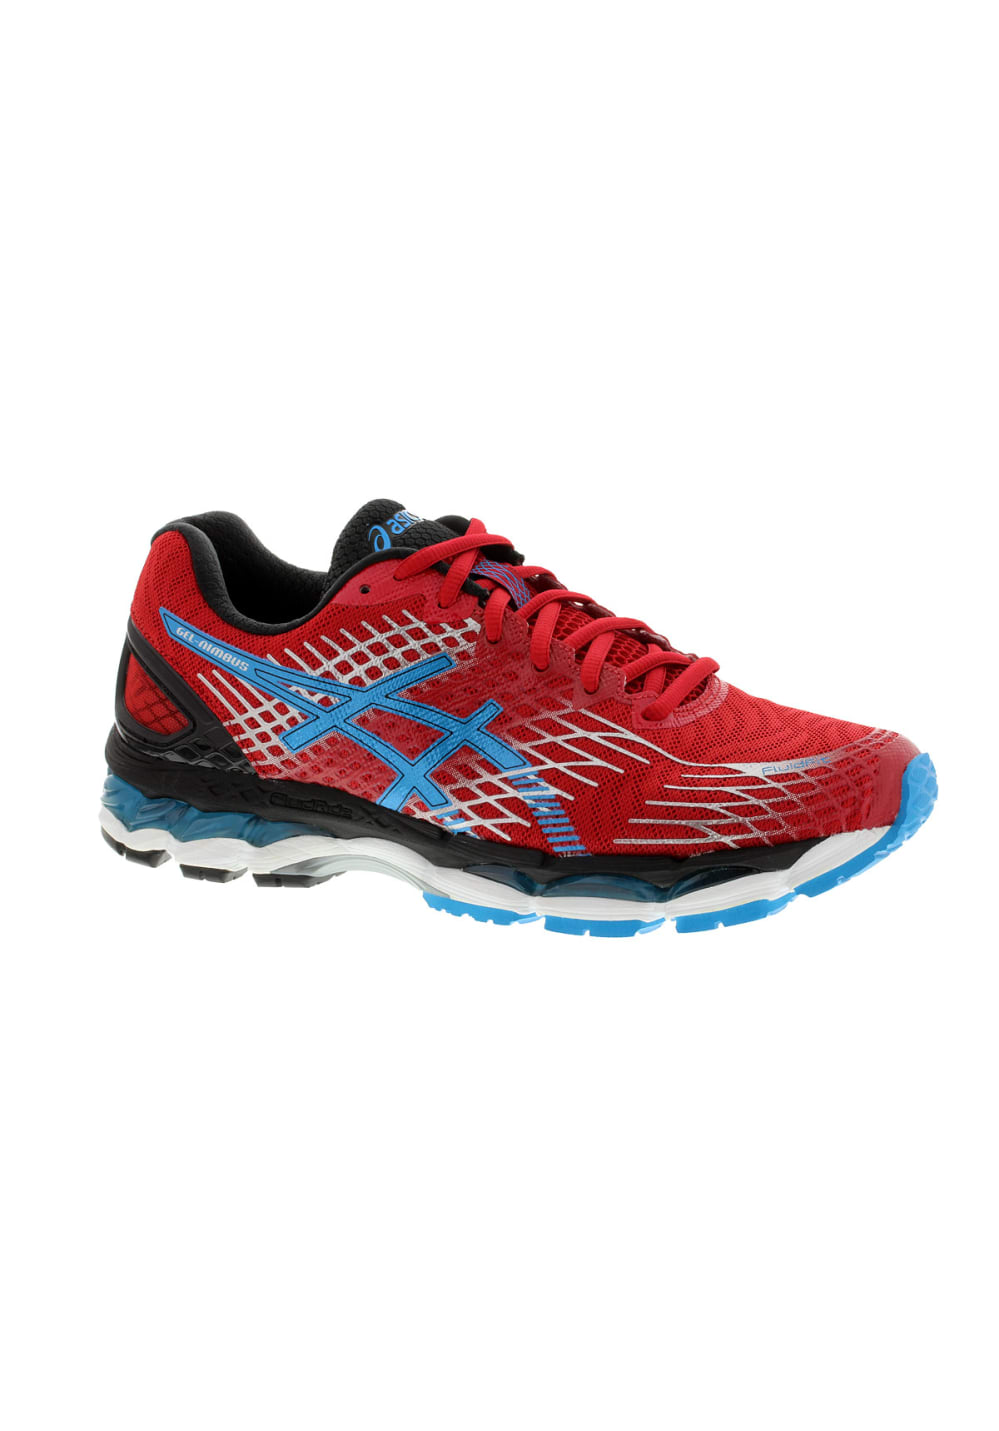 Nimbus Homme Gel 17 Chaussures Pour Asics Running Rouge hQdtsrC